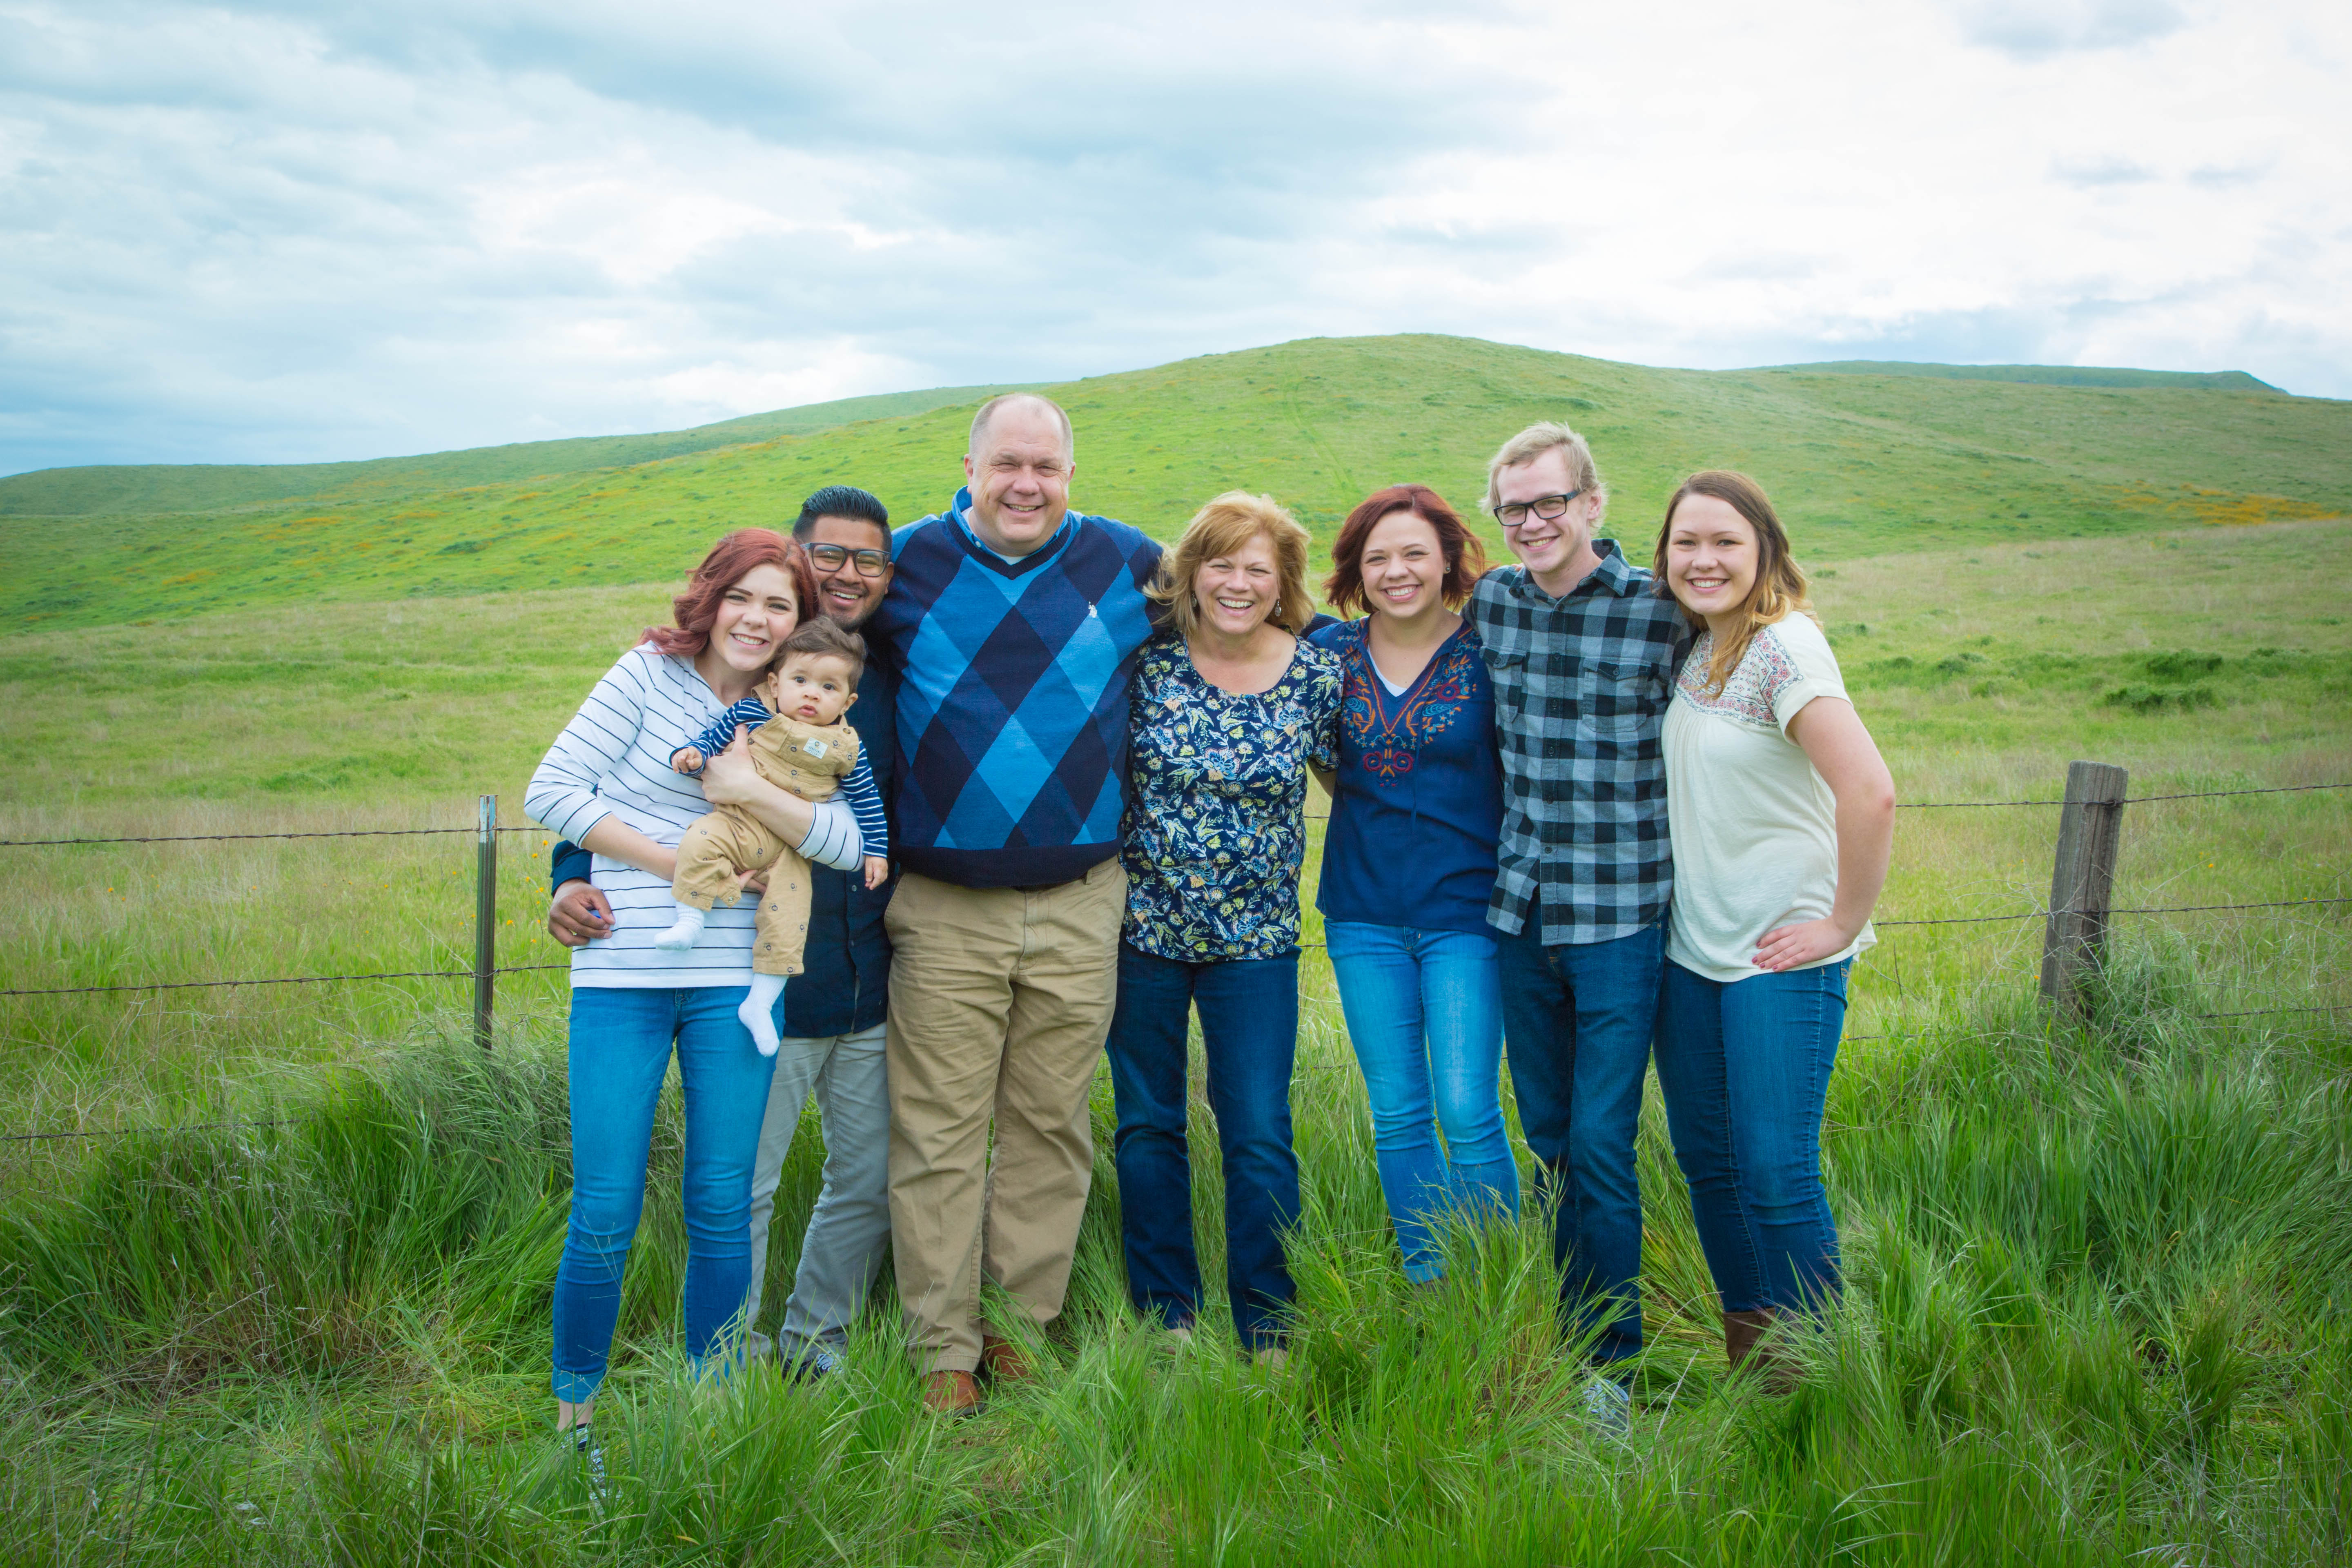 Andreasen Family Session - Kern County - Nilas Photography - Photographer (21 of 30)